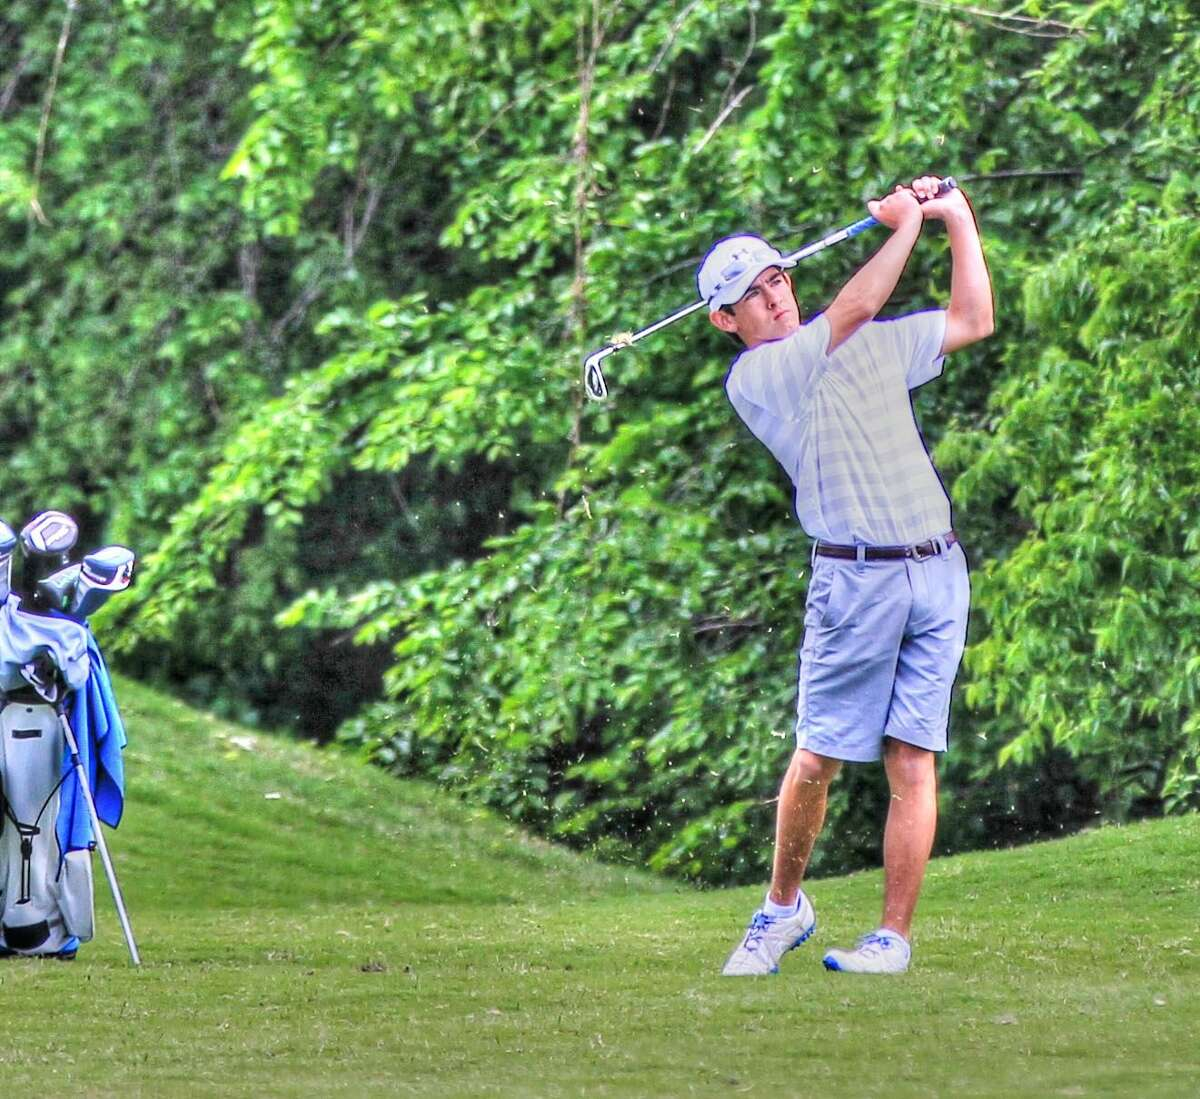 Trinity freshman golfer Austin Escamilla is shown here during the TAPPS 3A North Region Tournament at Canyon West Golf Club in Weatherford on Tuesday, April 21. Courtesy photo